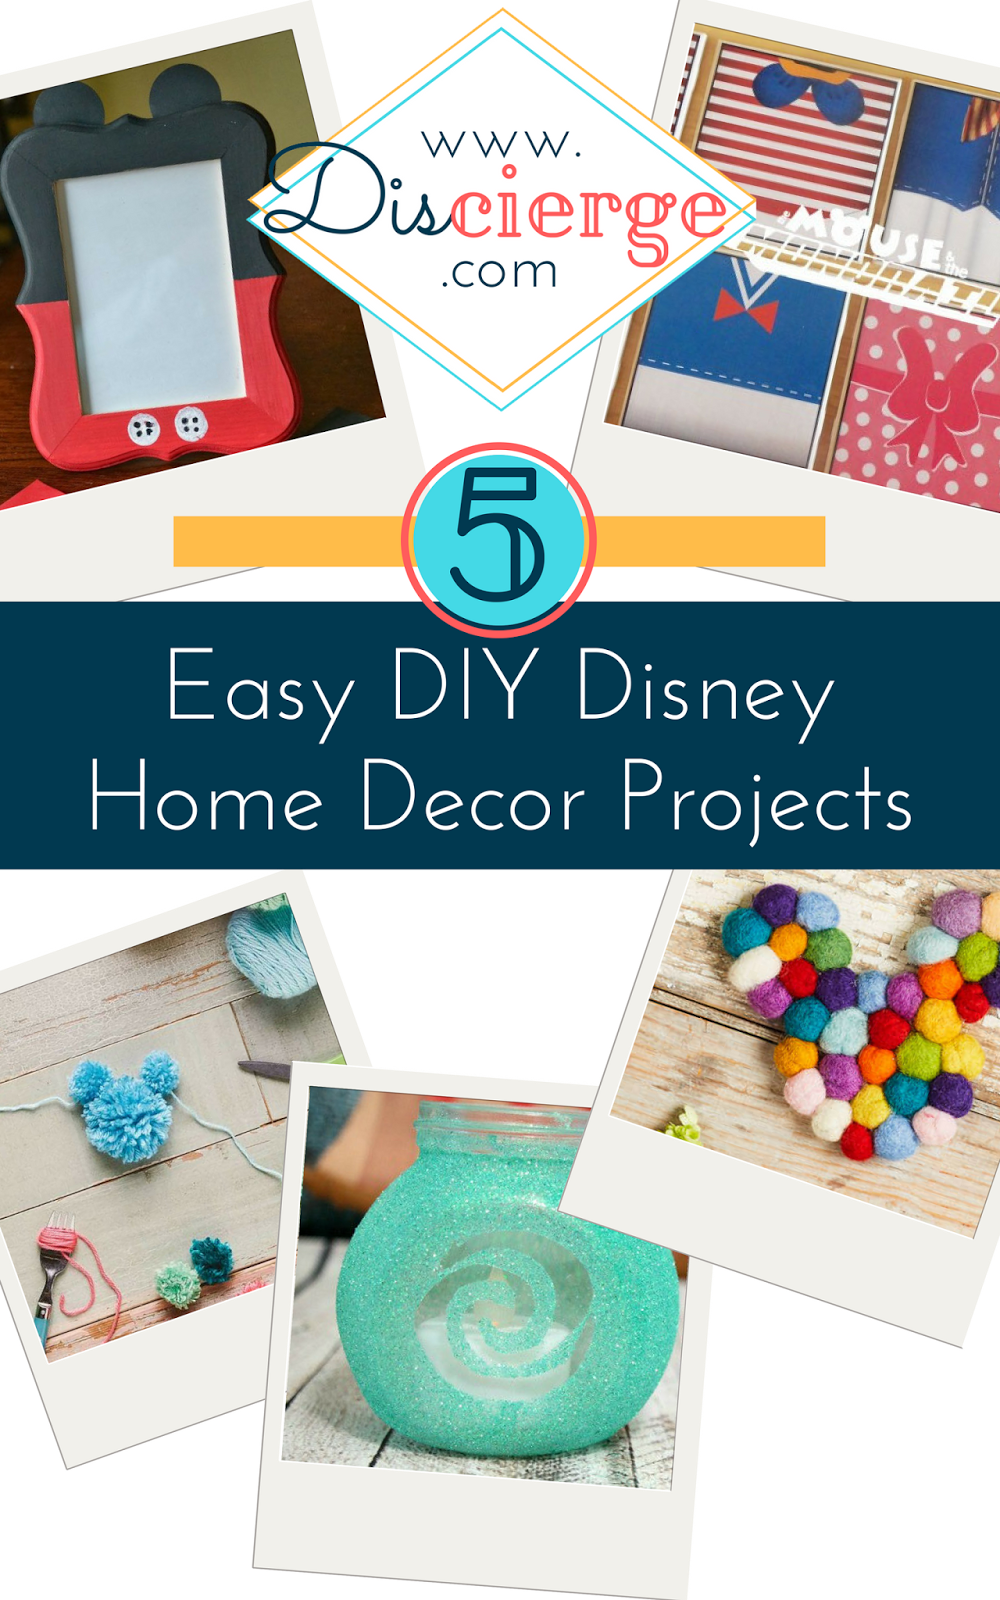 Discierge 5 easy diy disney home decor projects for Easy home improvement projects